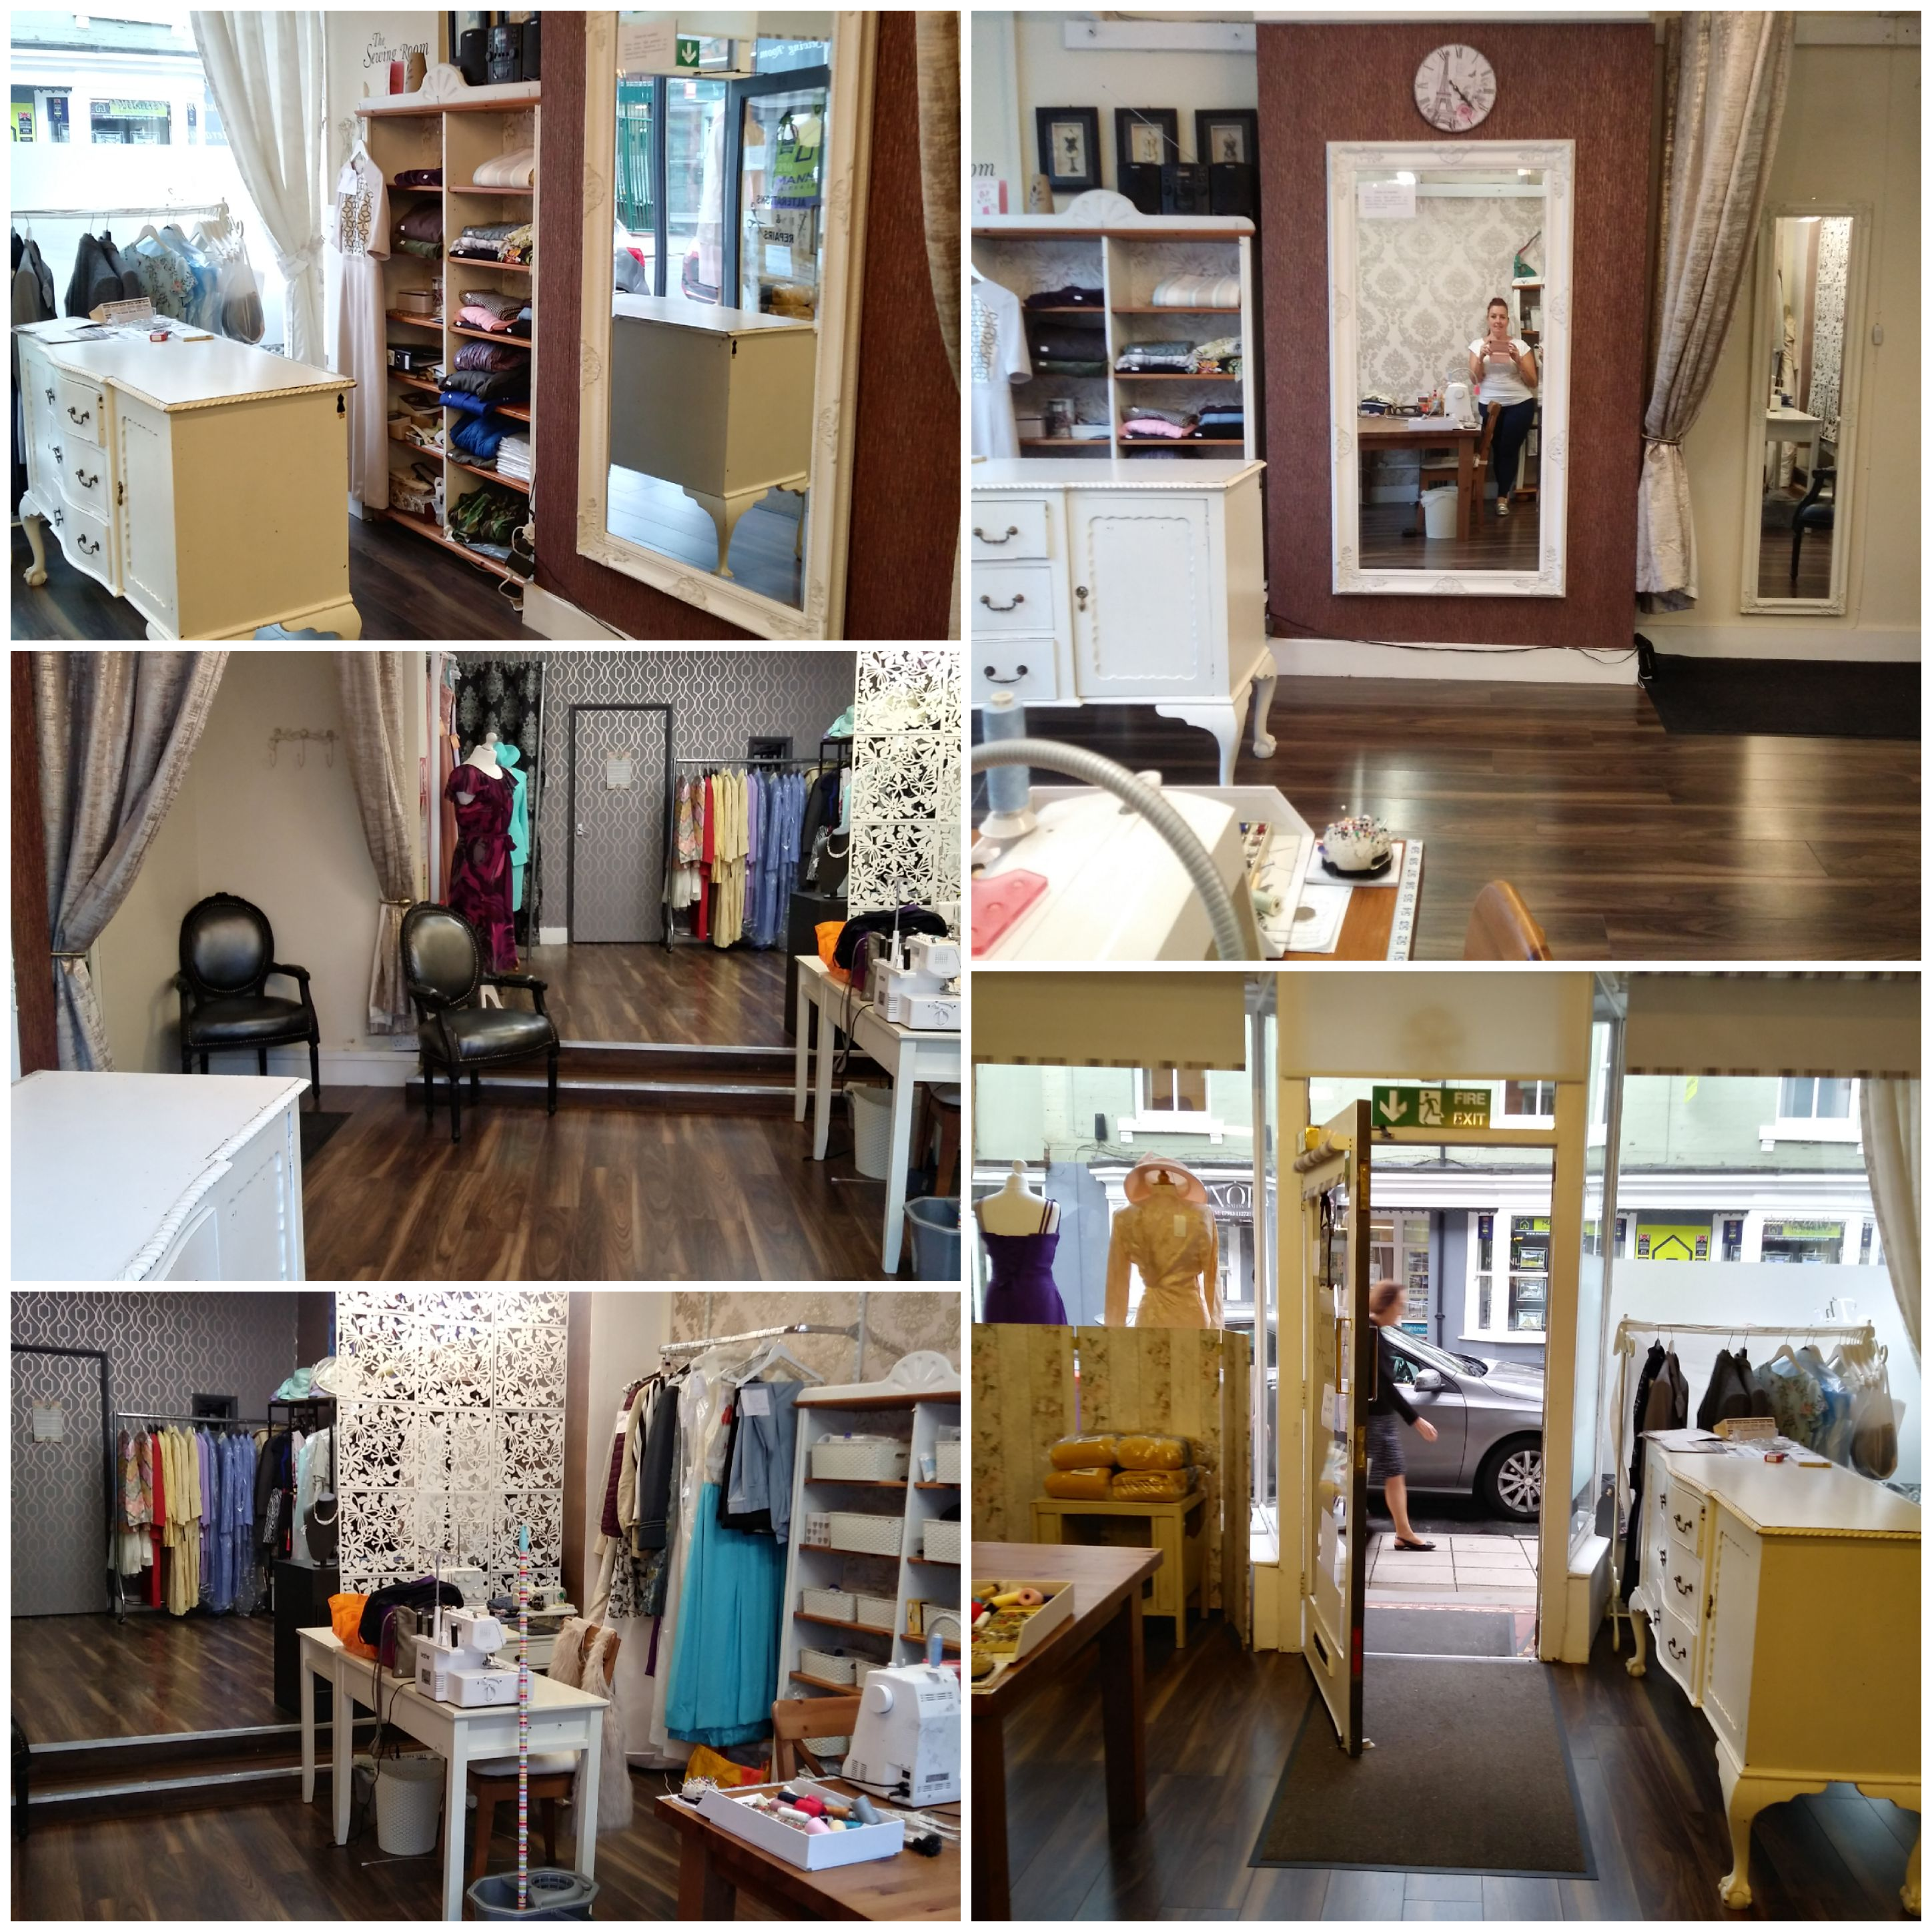 THE CREATIVE SEWING ROOM LIMITED